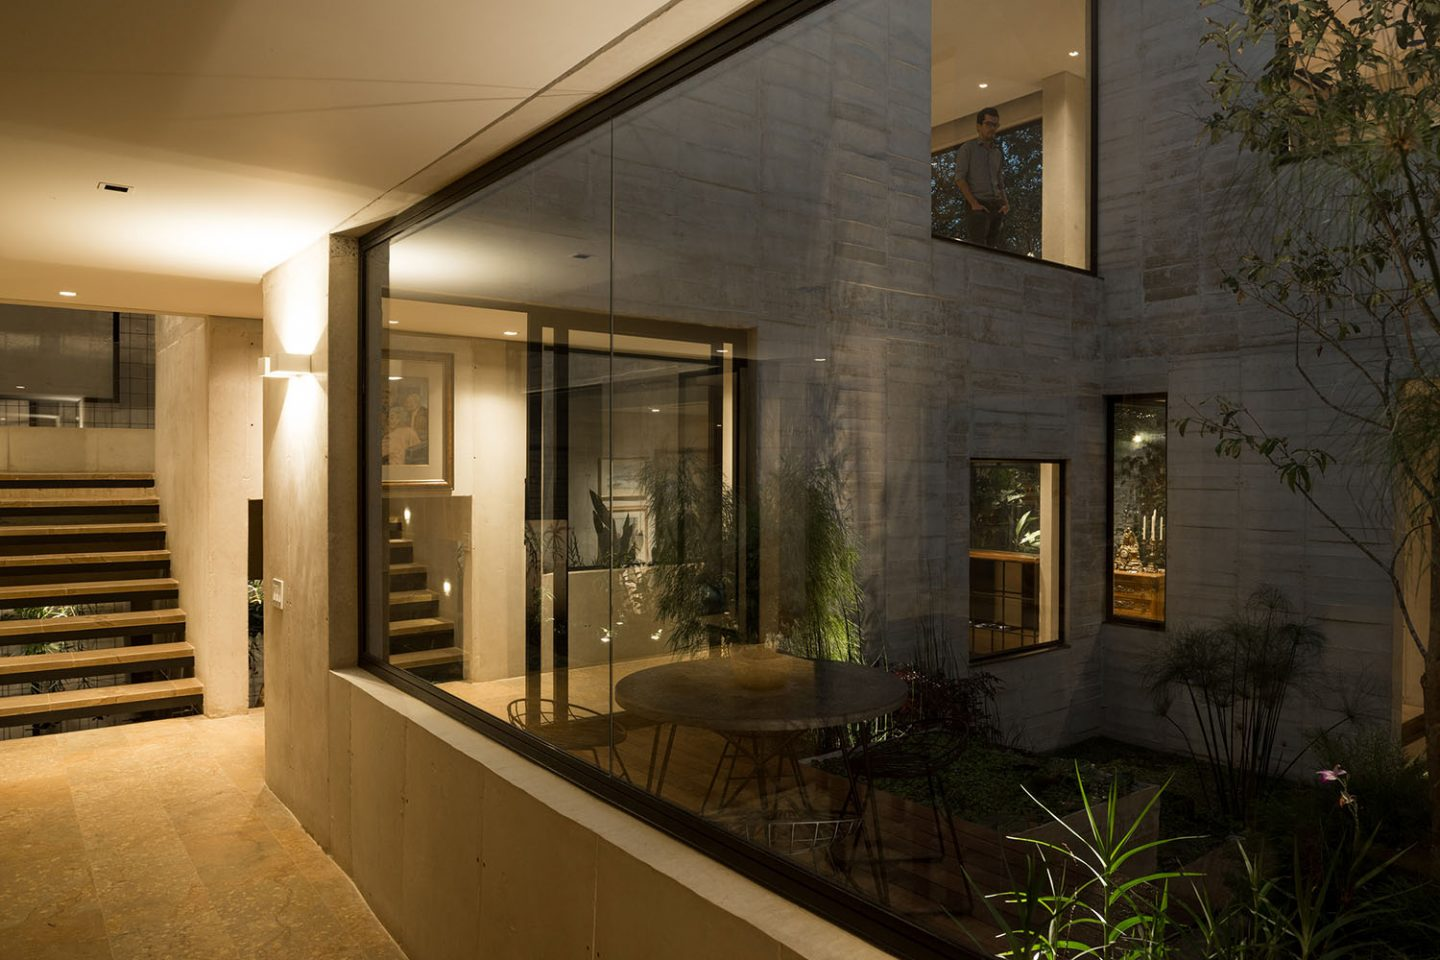 iGNANT_Architecture_Connatural_Garden_House_06